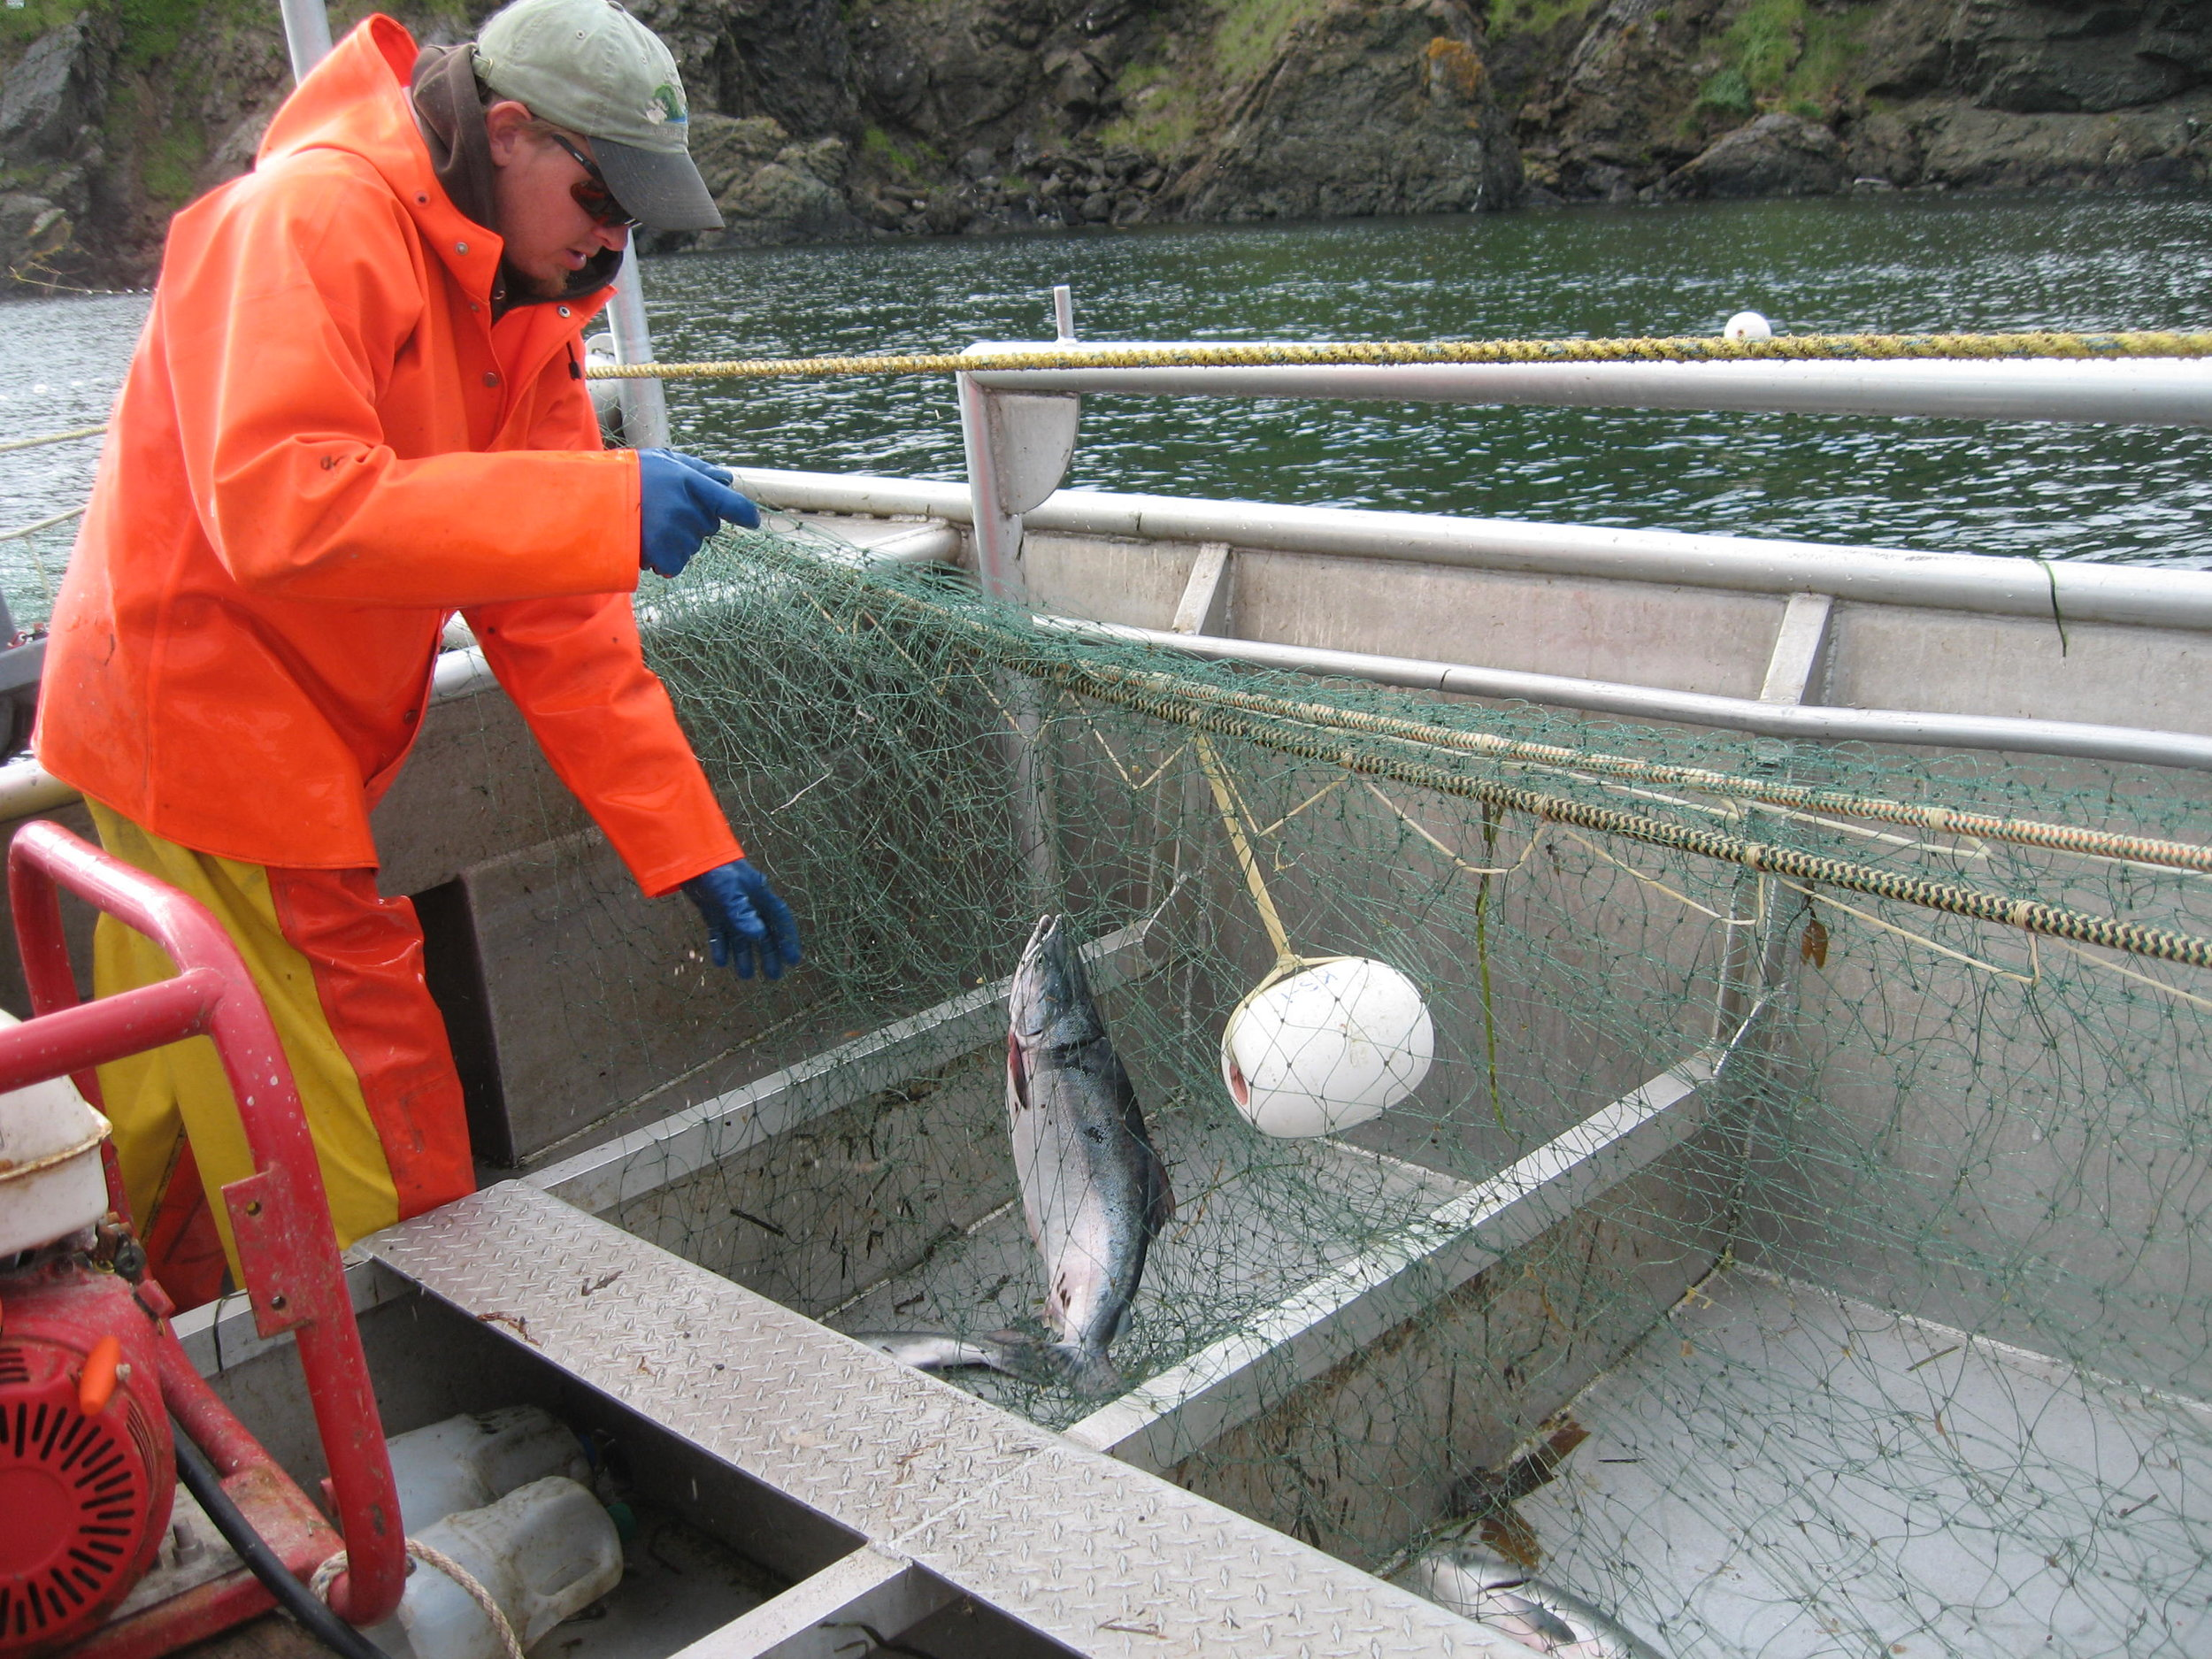 Tollef picking wiggling salmon from his net